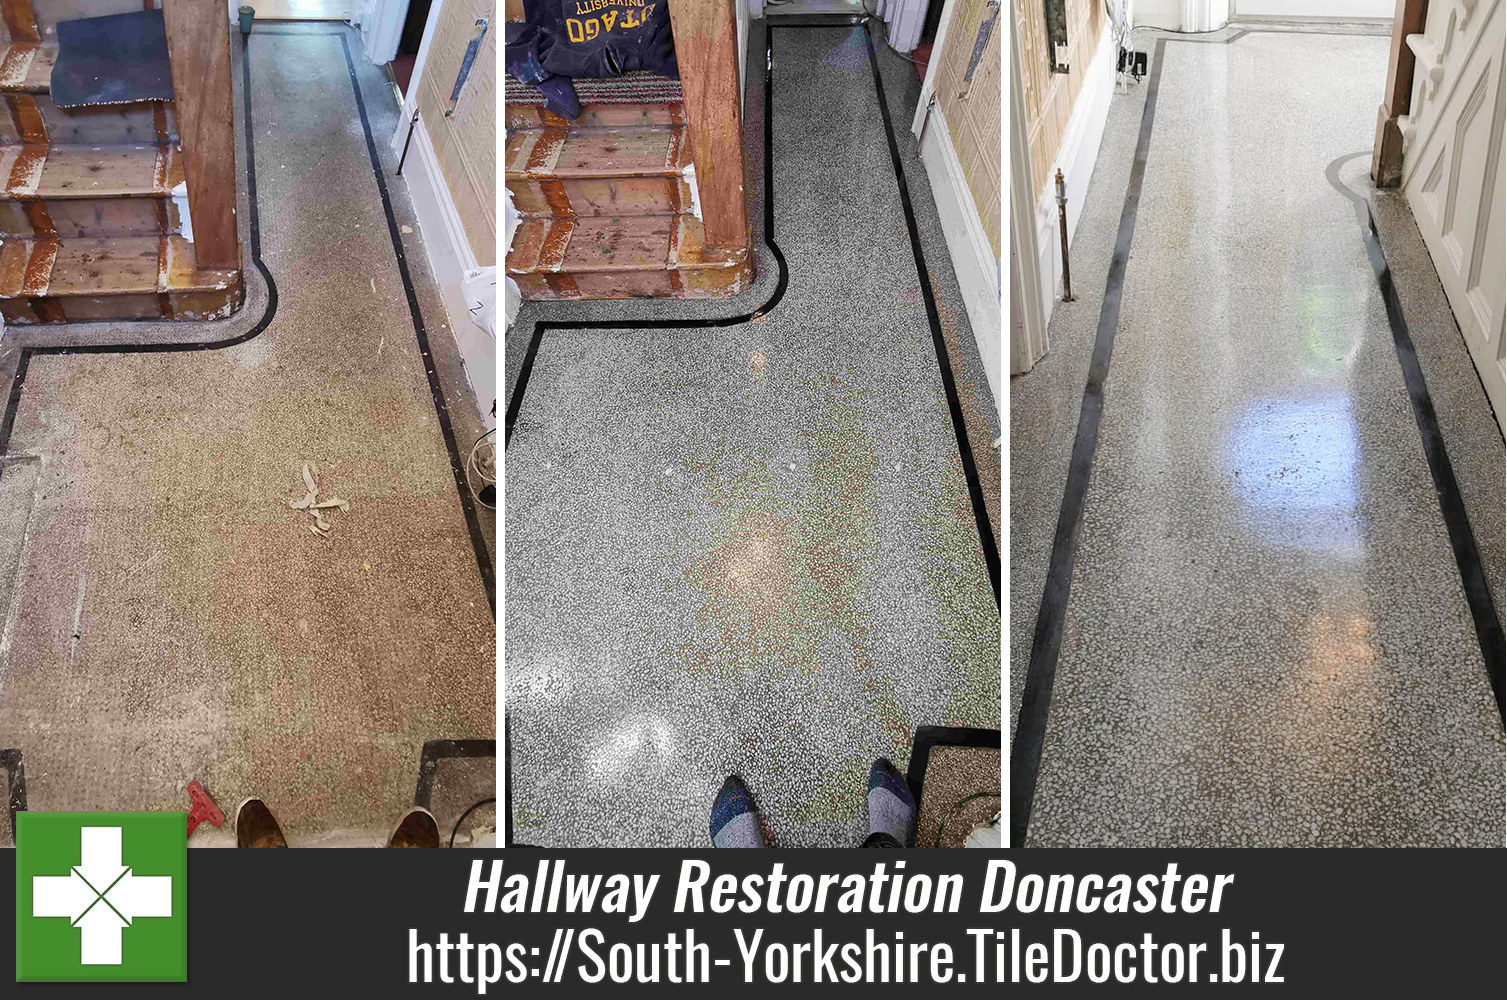 Restoration of an iconic Terrazzo Floor in Doncaster